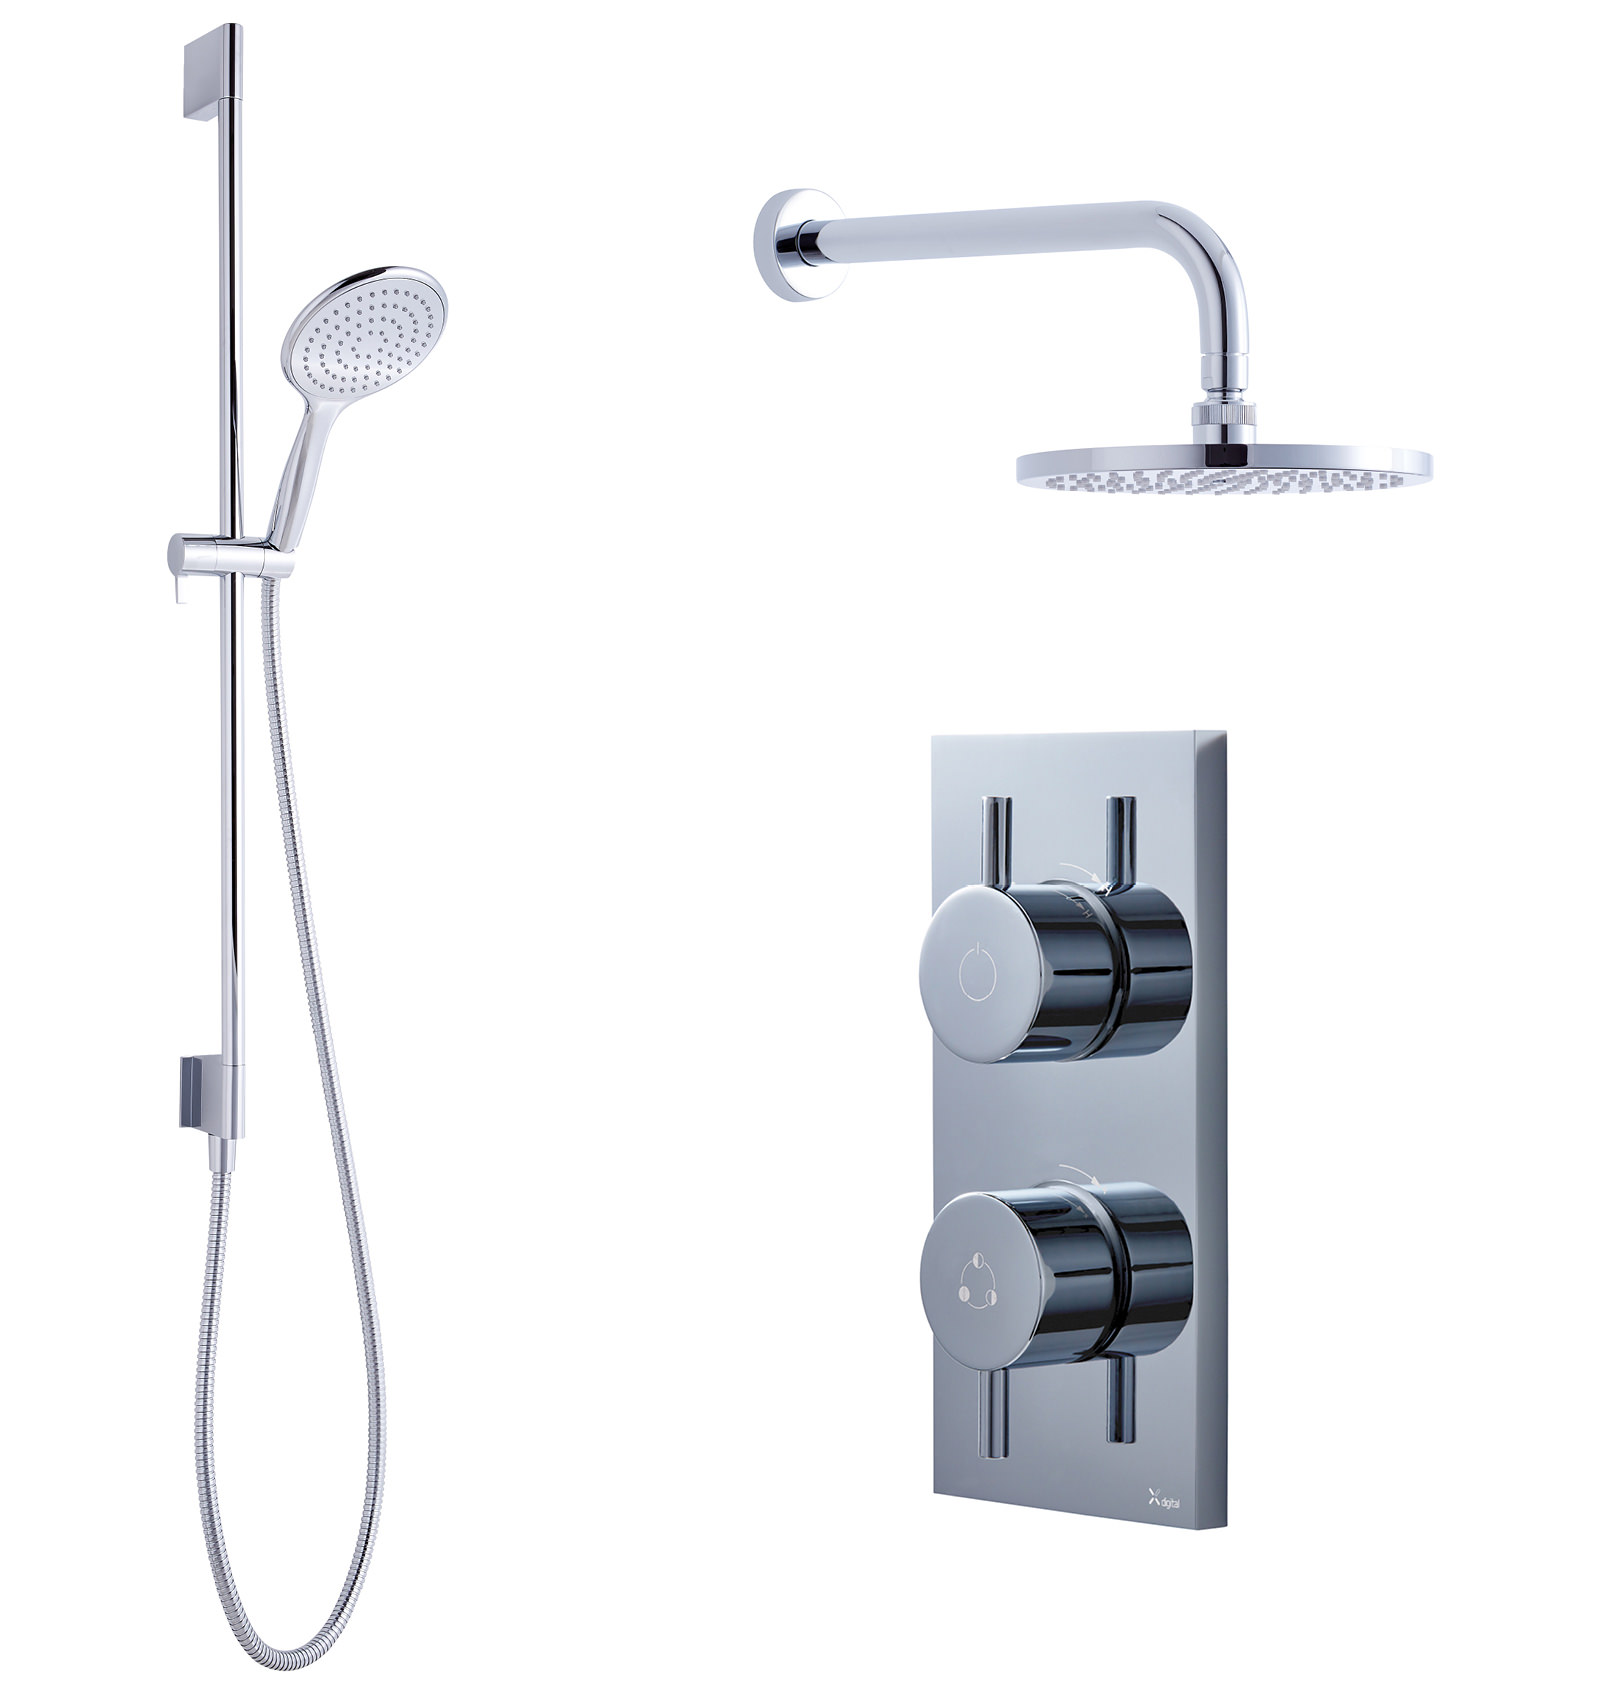 bathroom showers overhead head faucet accessories shower ware sanitary erome kitchen